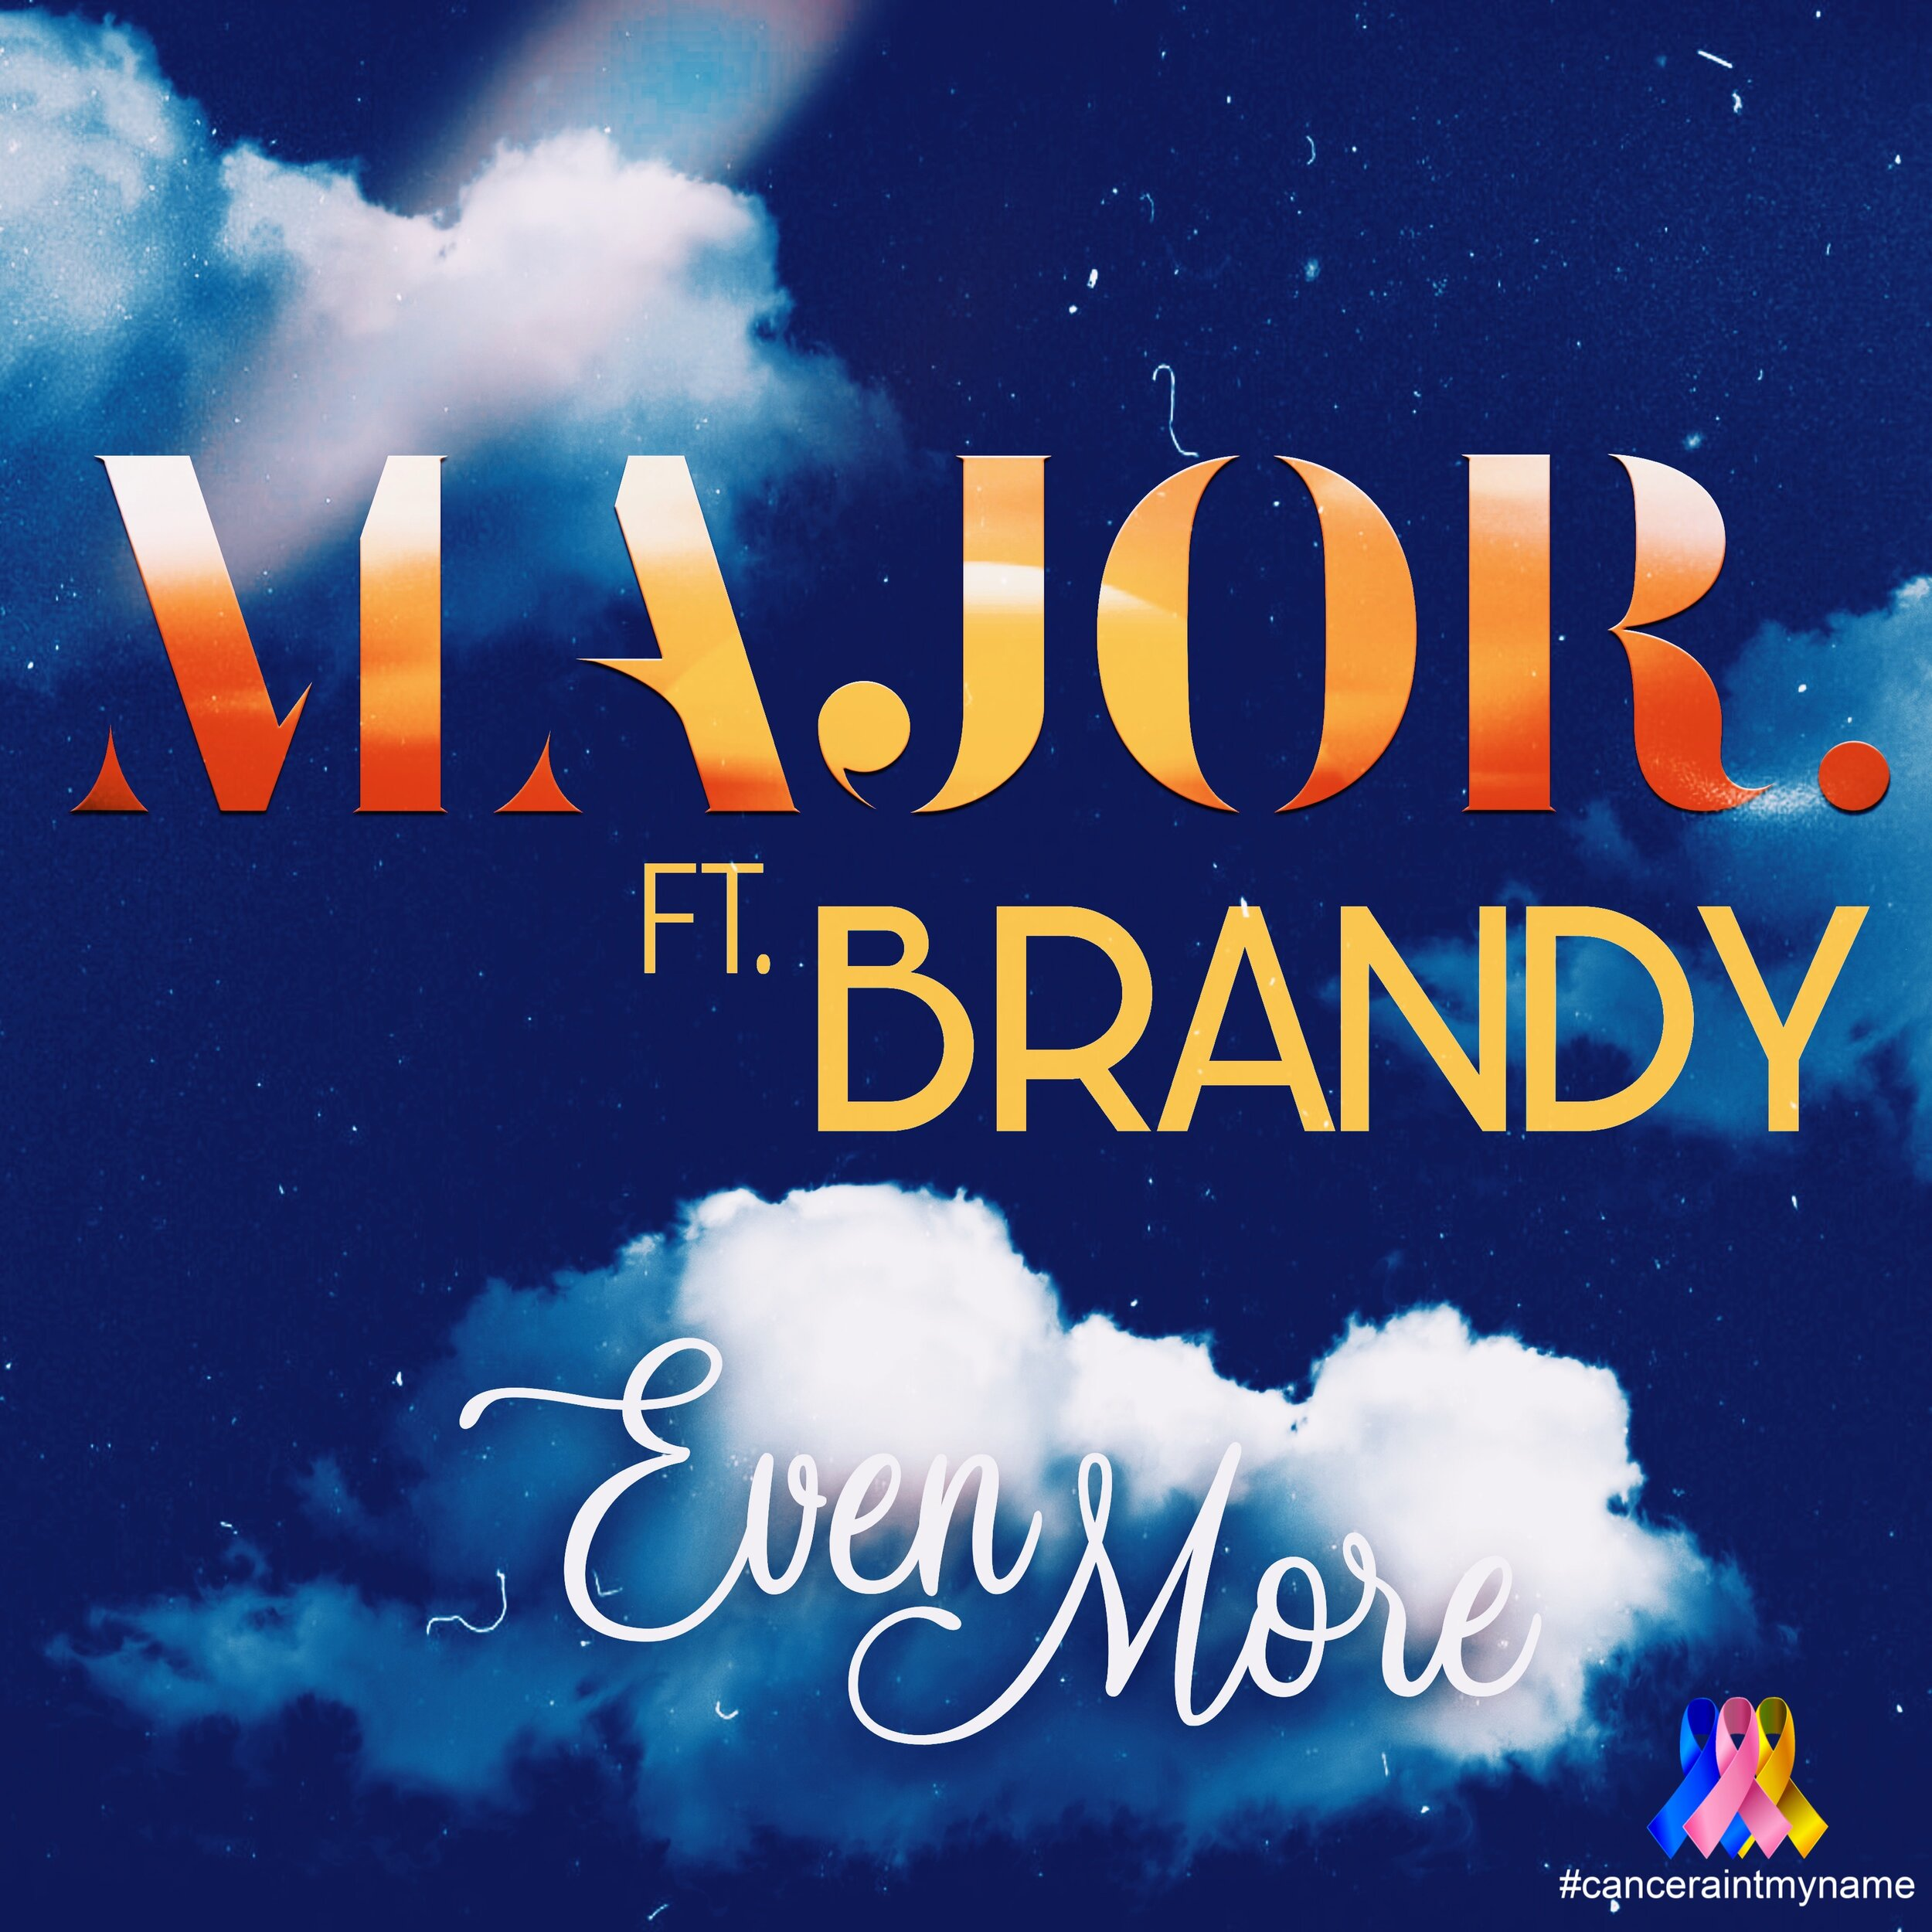 Even More ft. Brandy - CLICK TO BUY